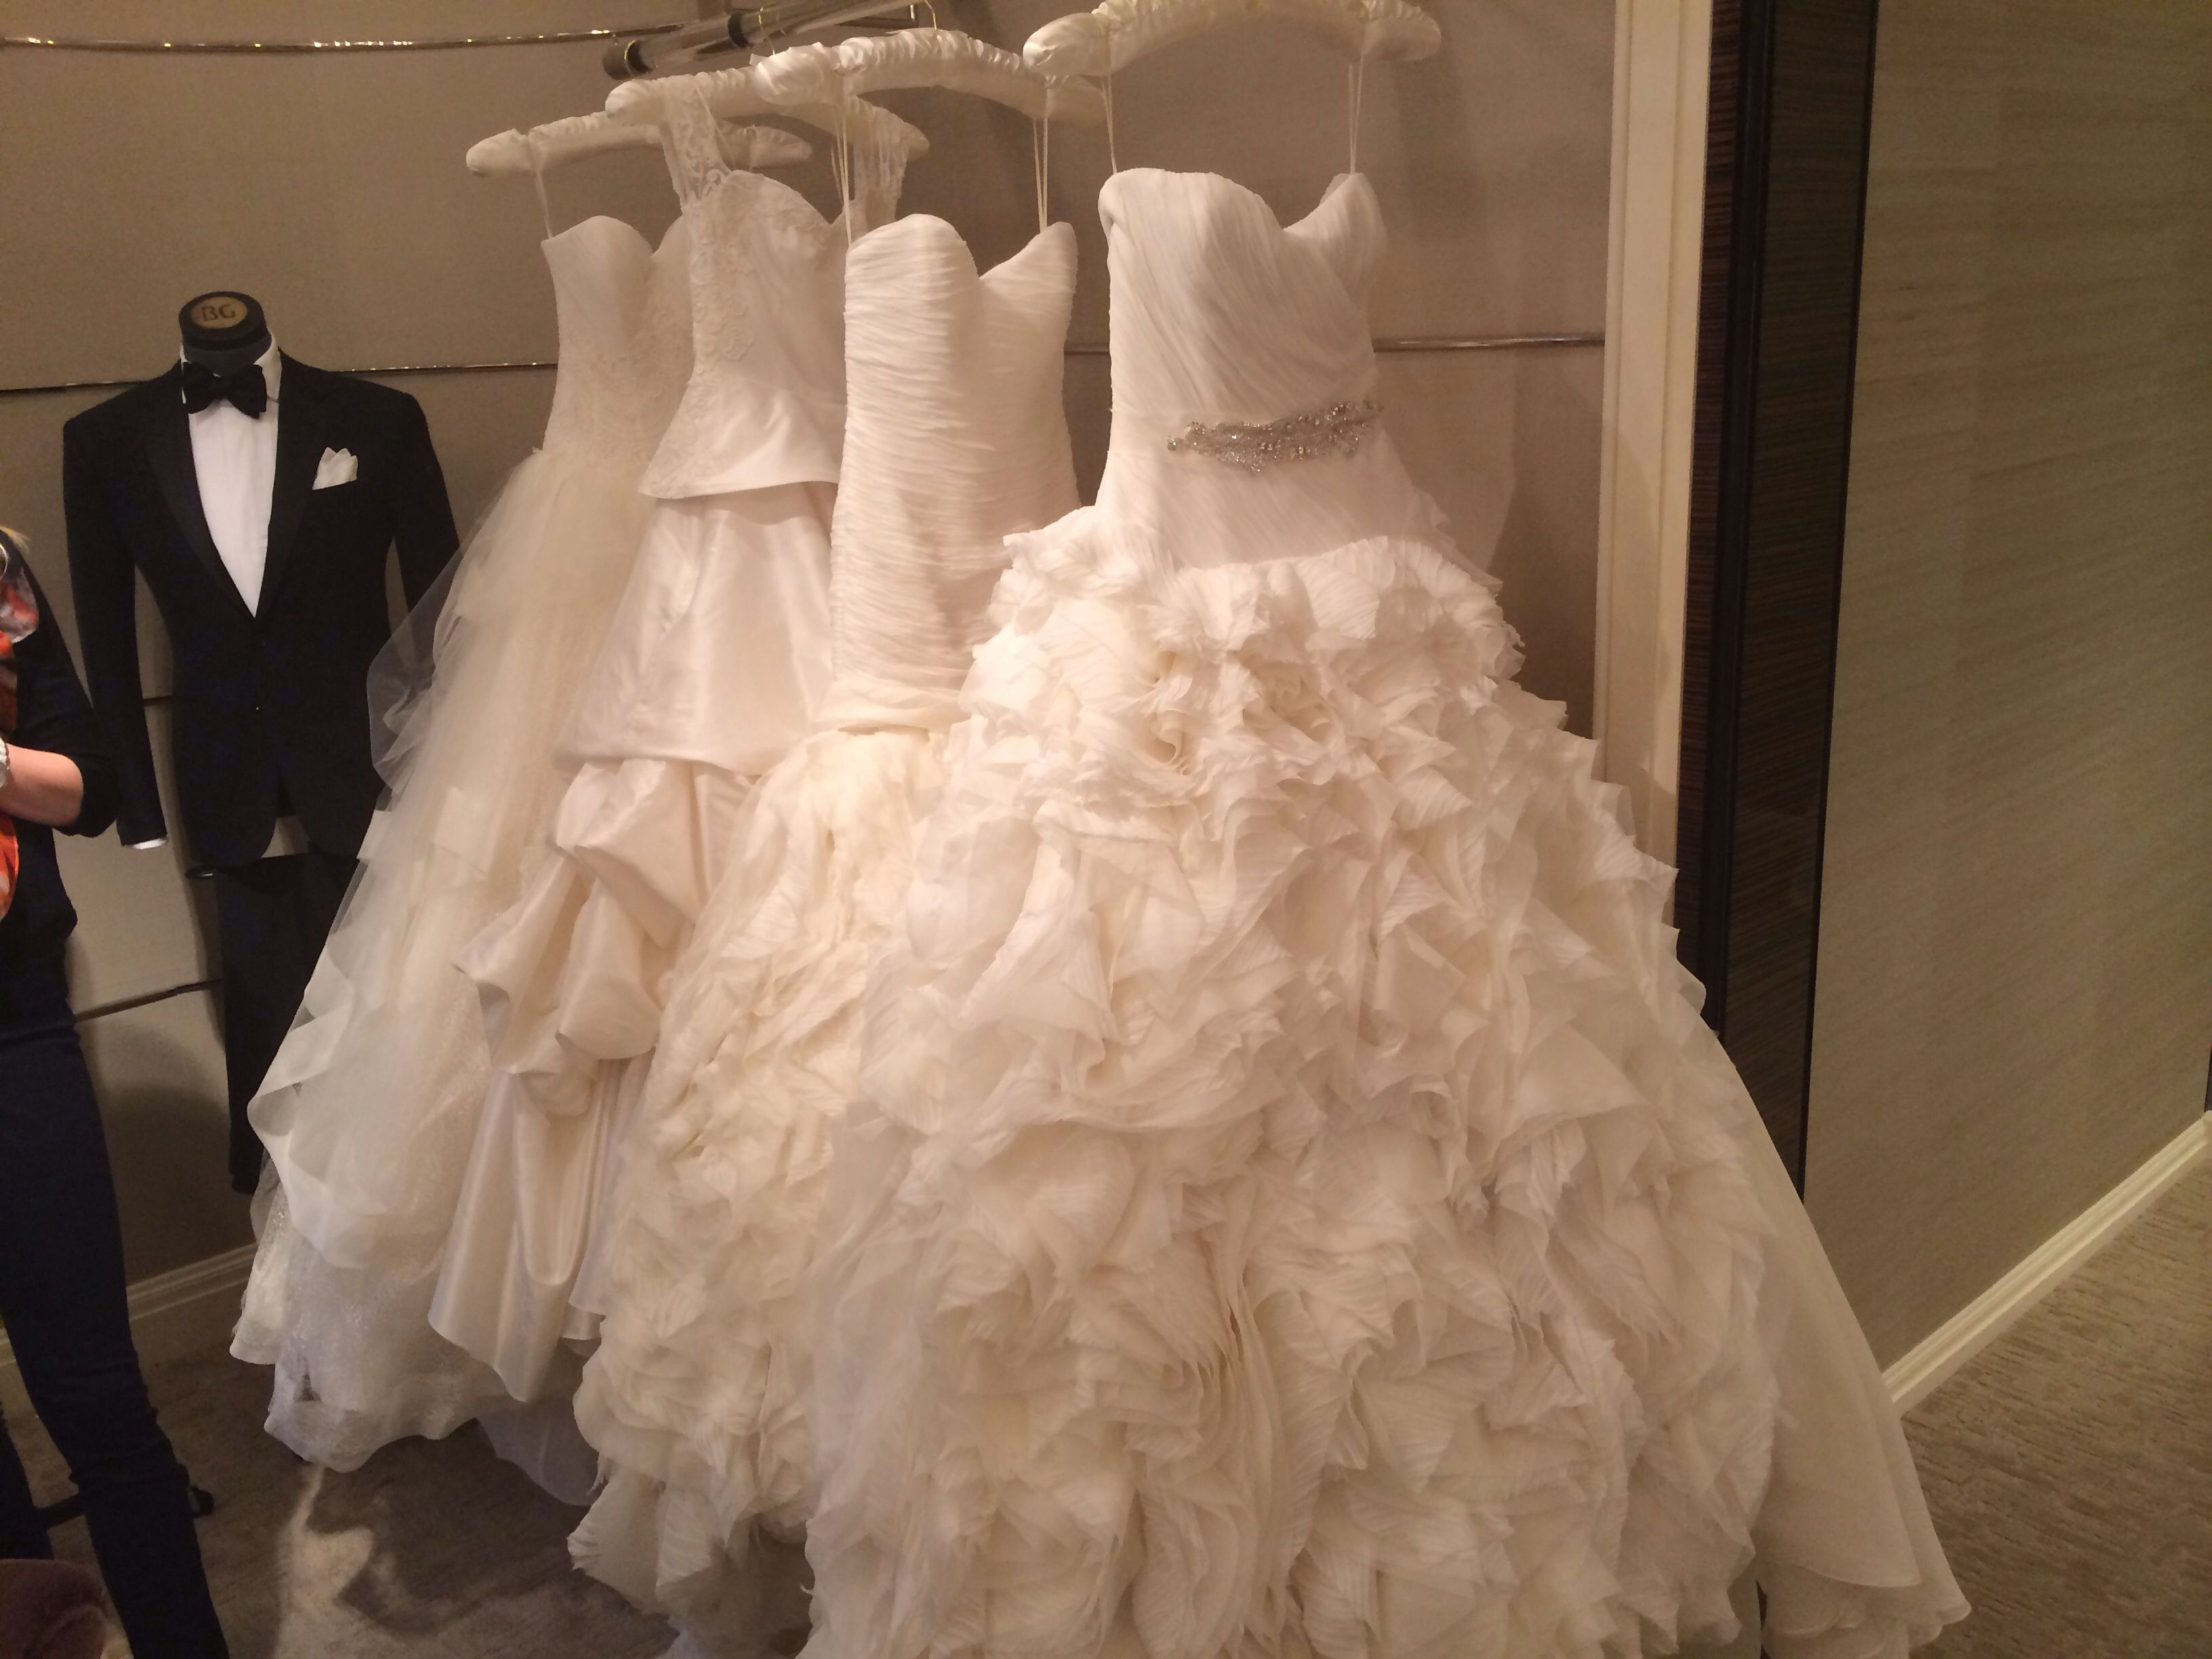 Isabelle Armstrong Bridal Trunk Show at Bergdorf Goodman ...